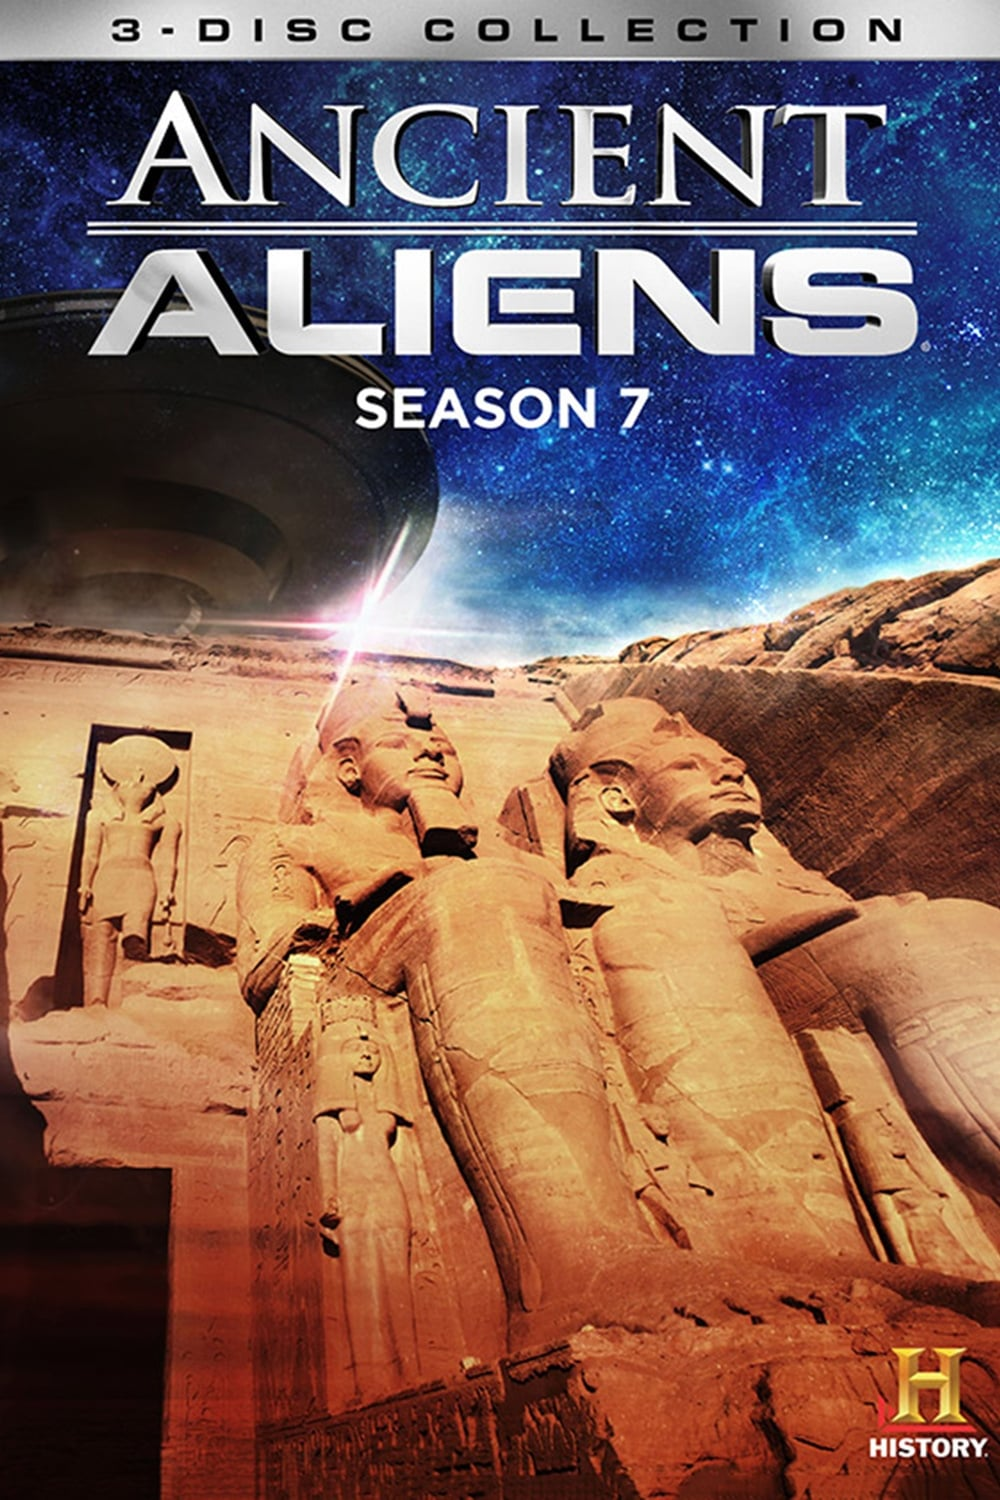 Ancient Aliens Season 7